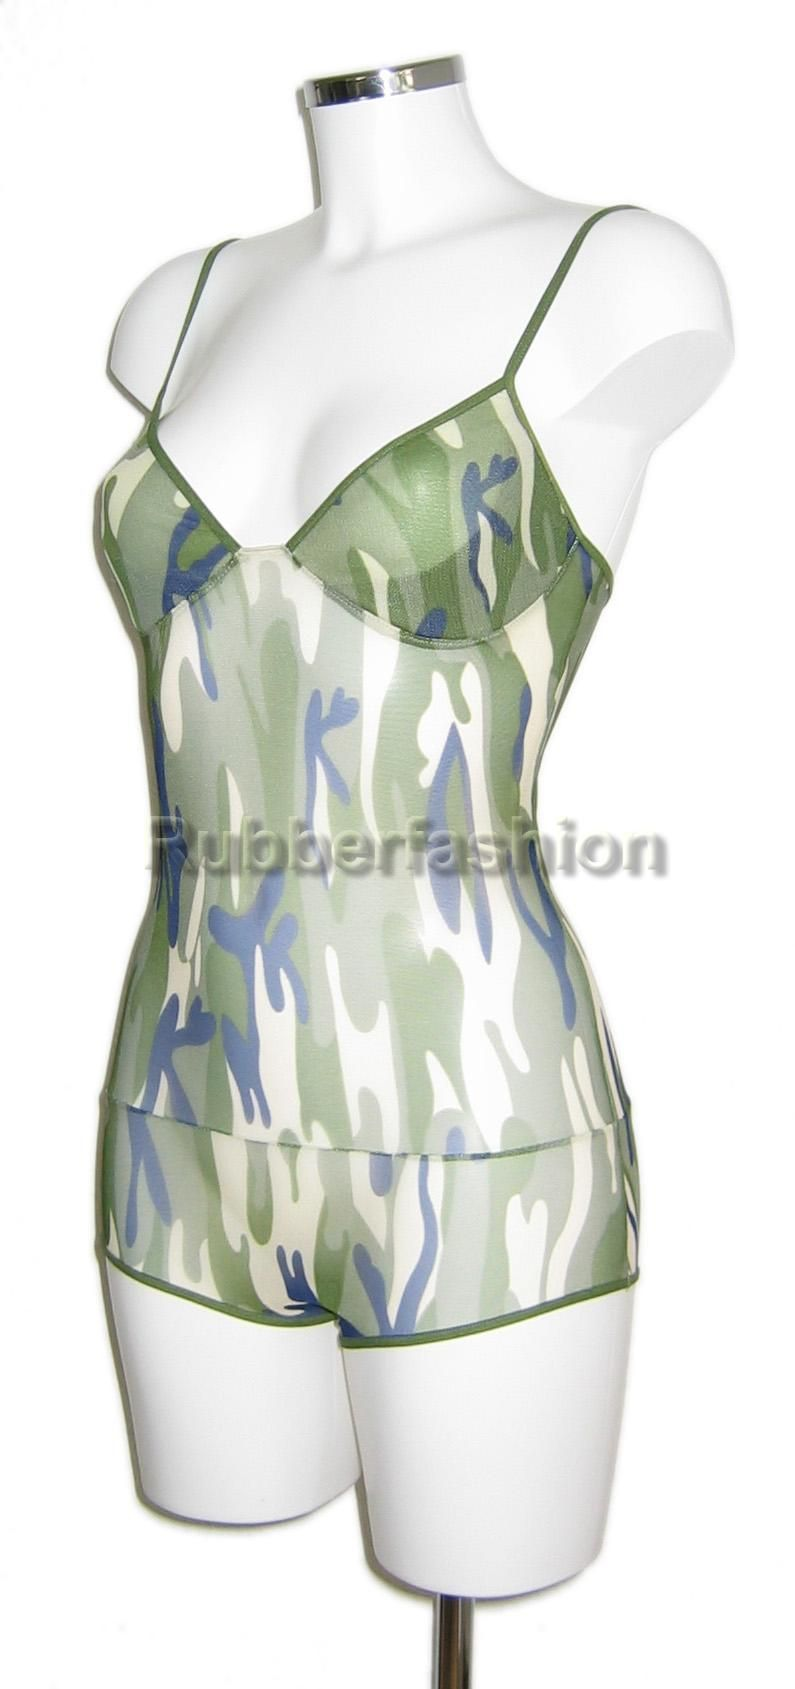 Wetlook army body and pvc miniskirt in thick quality PVC